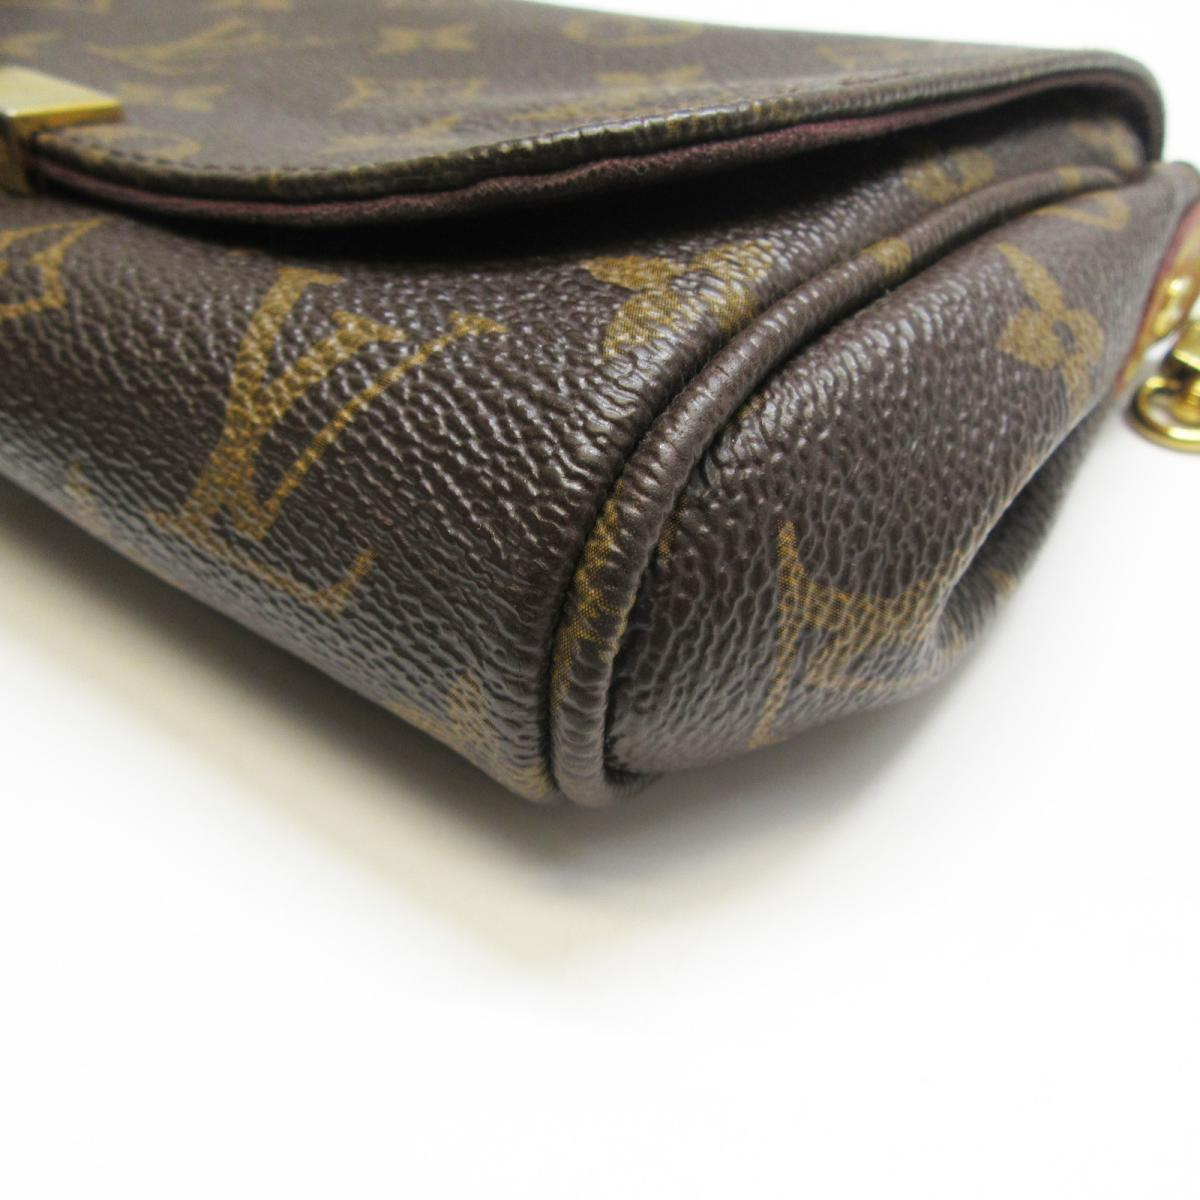 LOUIS VUITTON バッグ M40717 原花肩背手拿小包 Favorite PM M40717